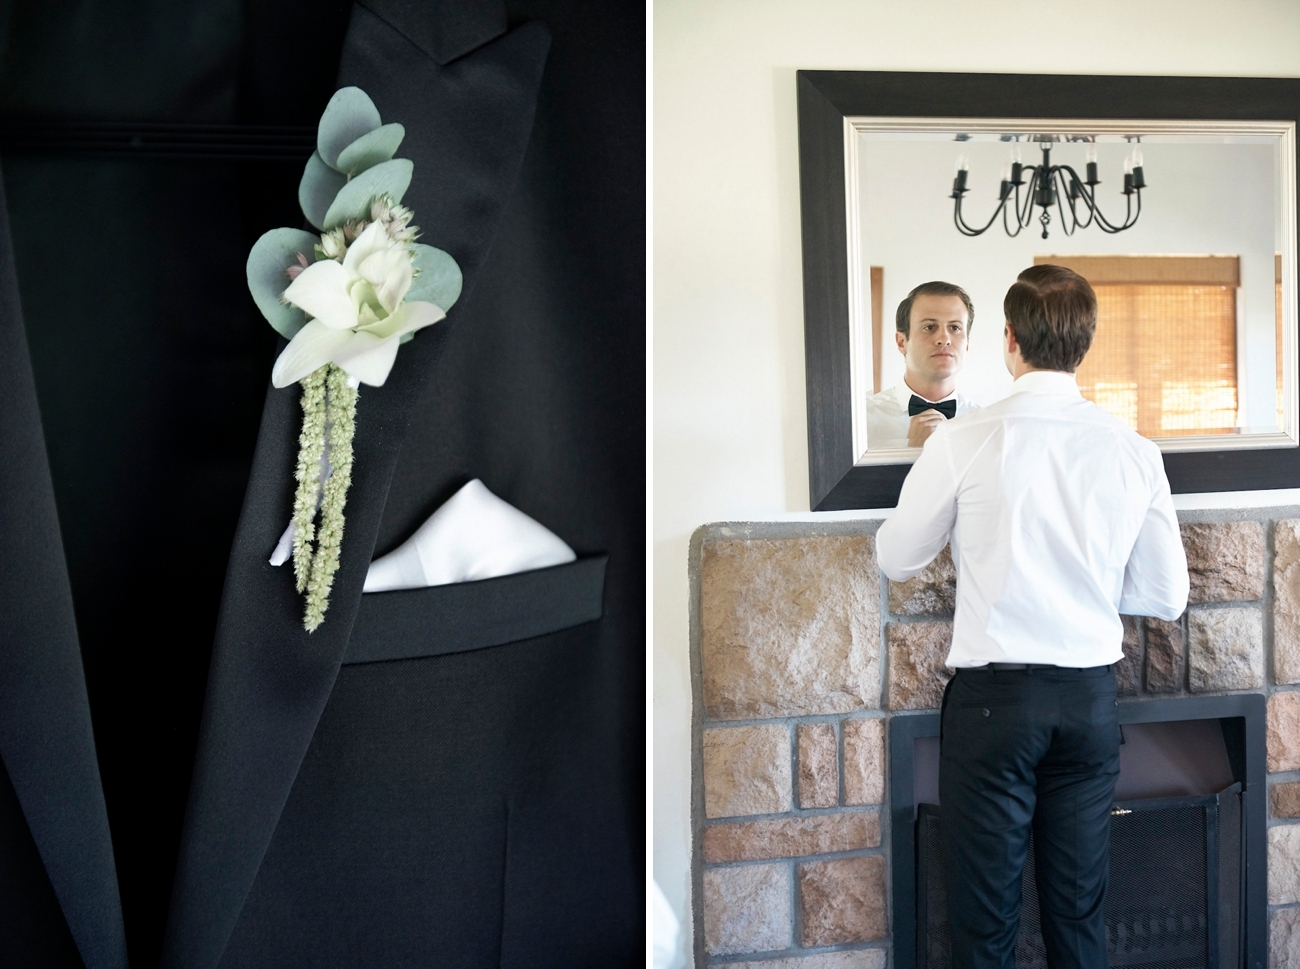 Green Boutonniere | Image: Knit Together Photography